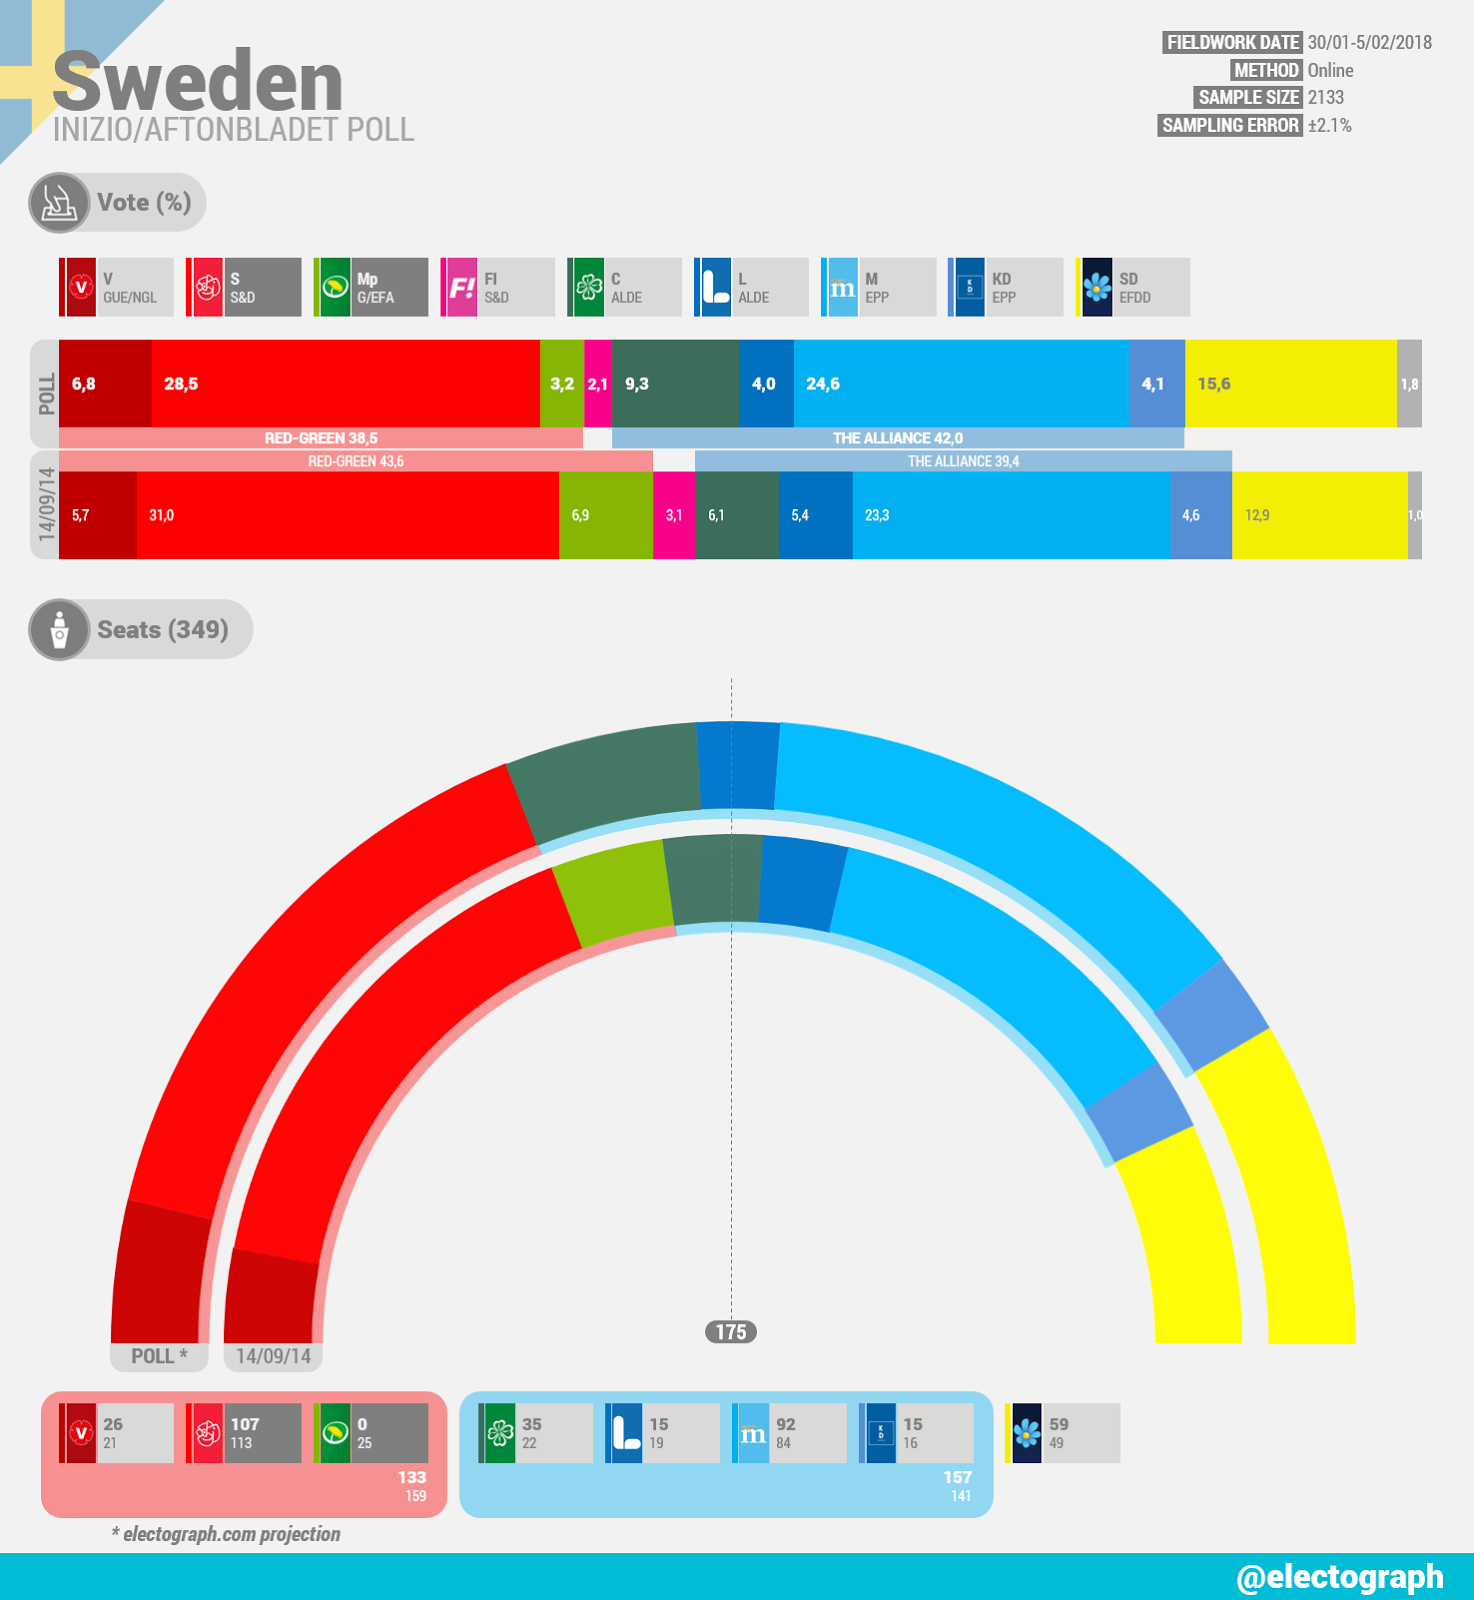 SWEDEN Inizio poll chart for Aftonbladet, February 2018